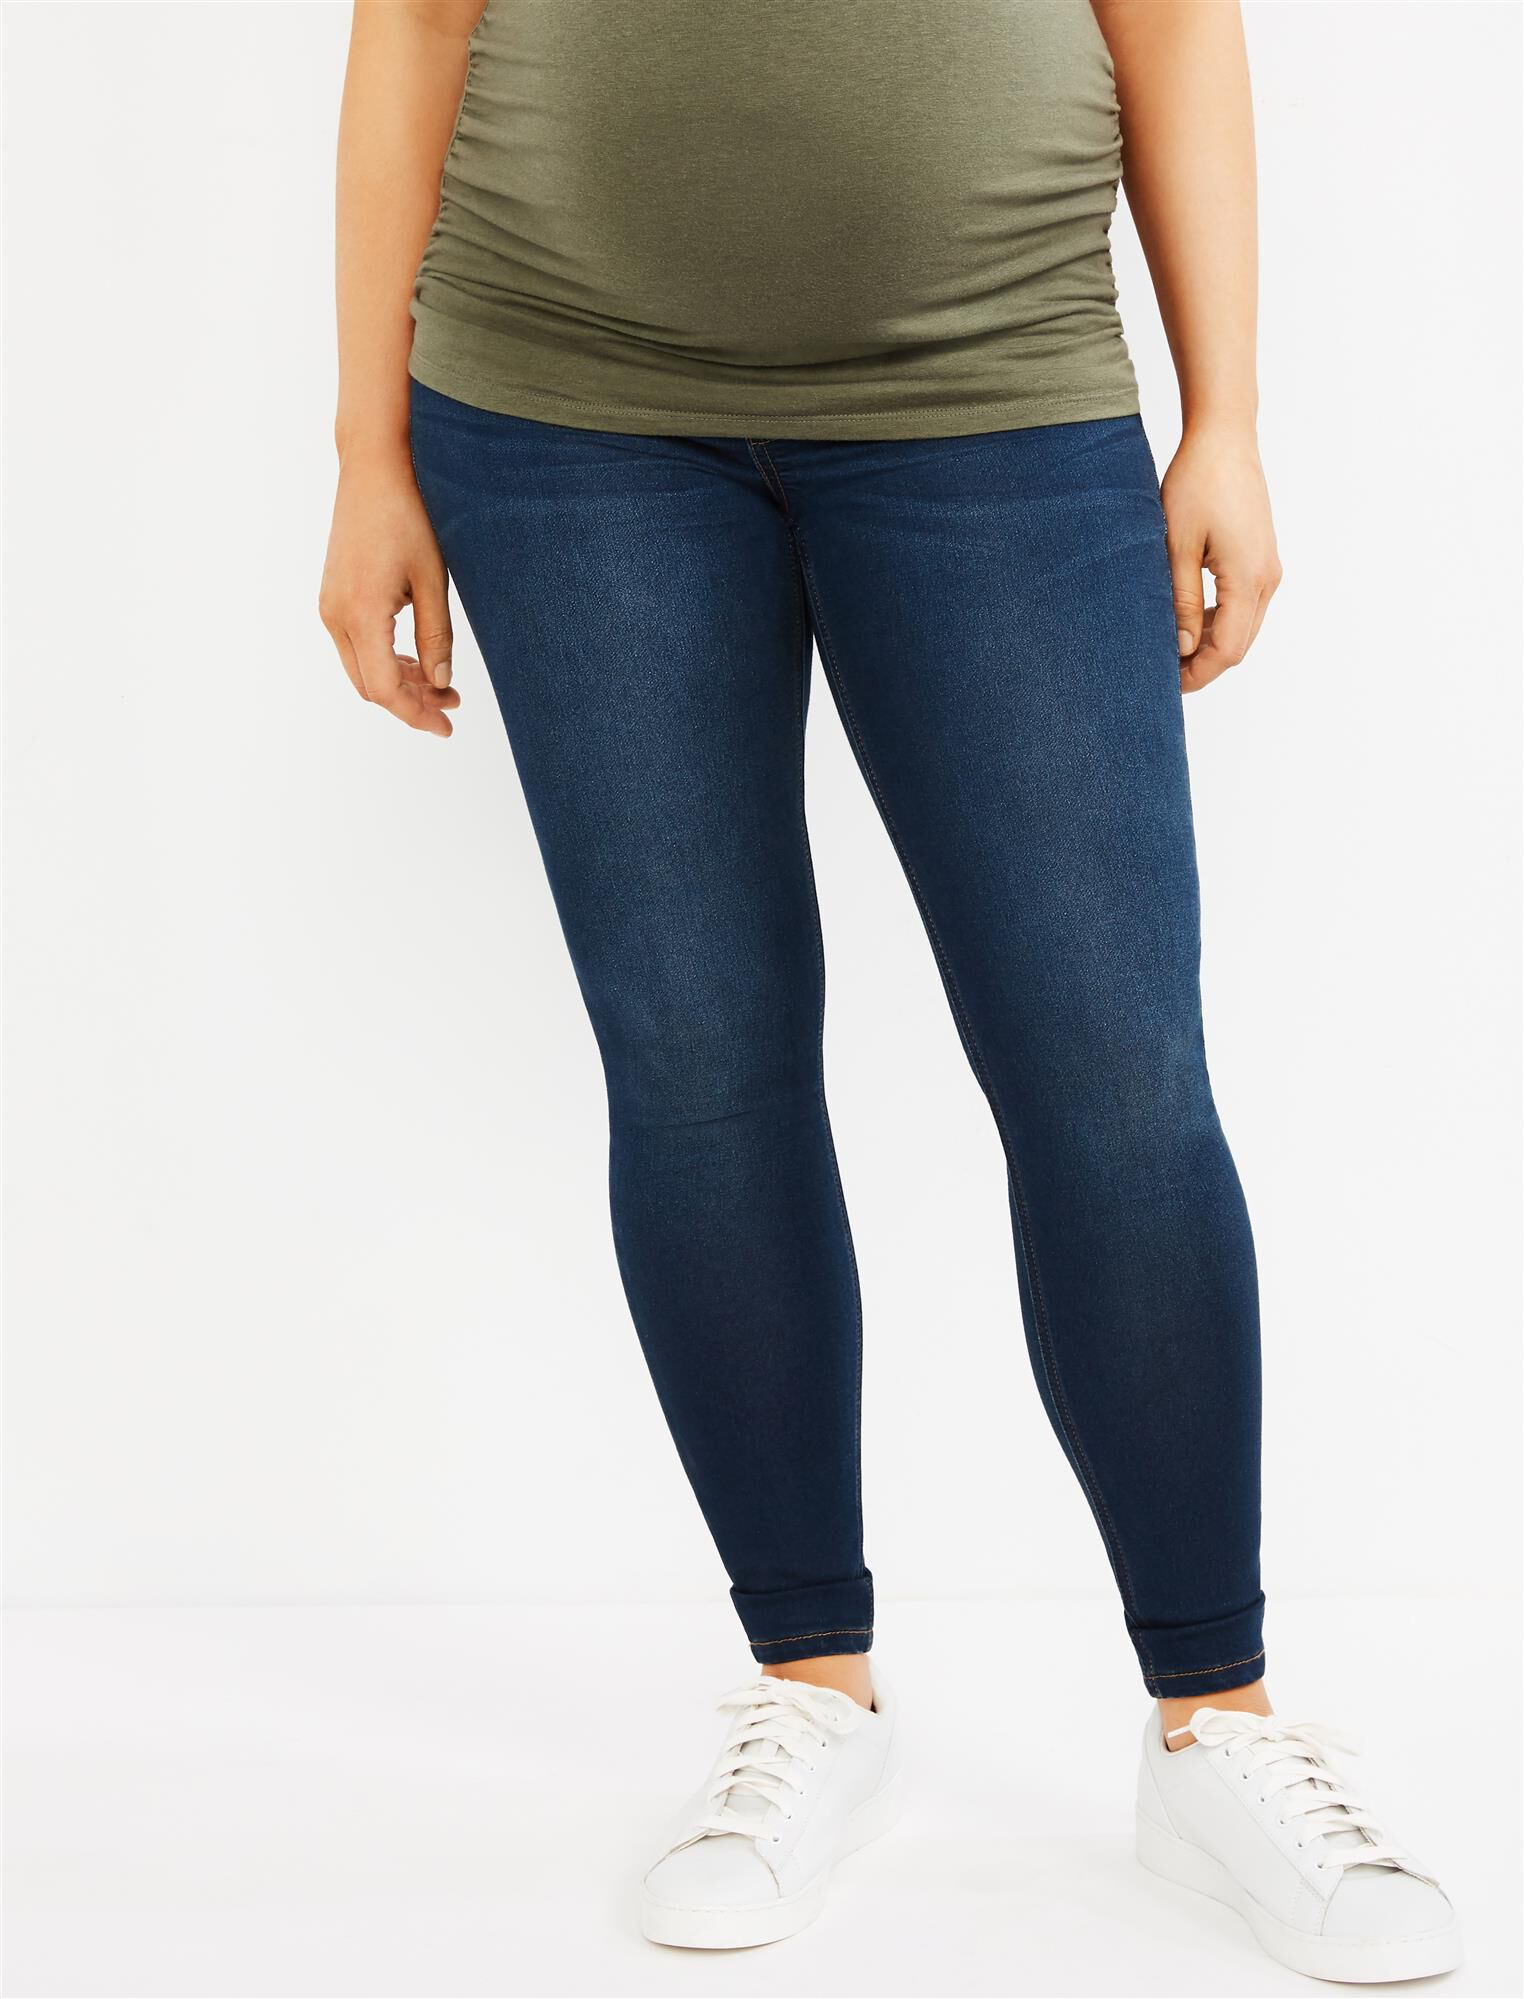 Secret Fit Belly Super Soft Maternity Jeans